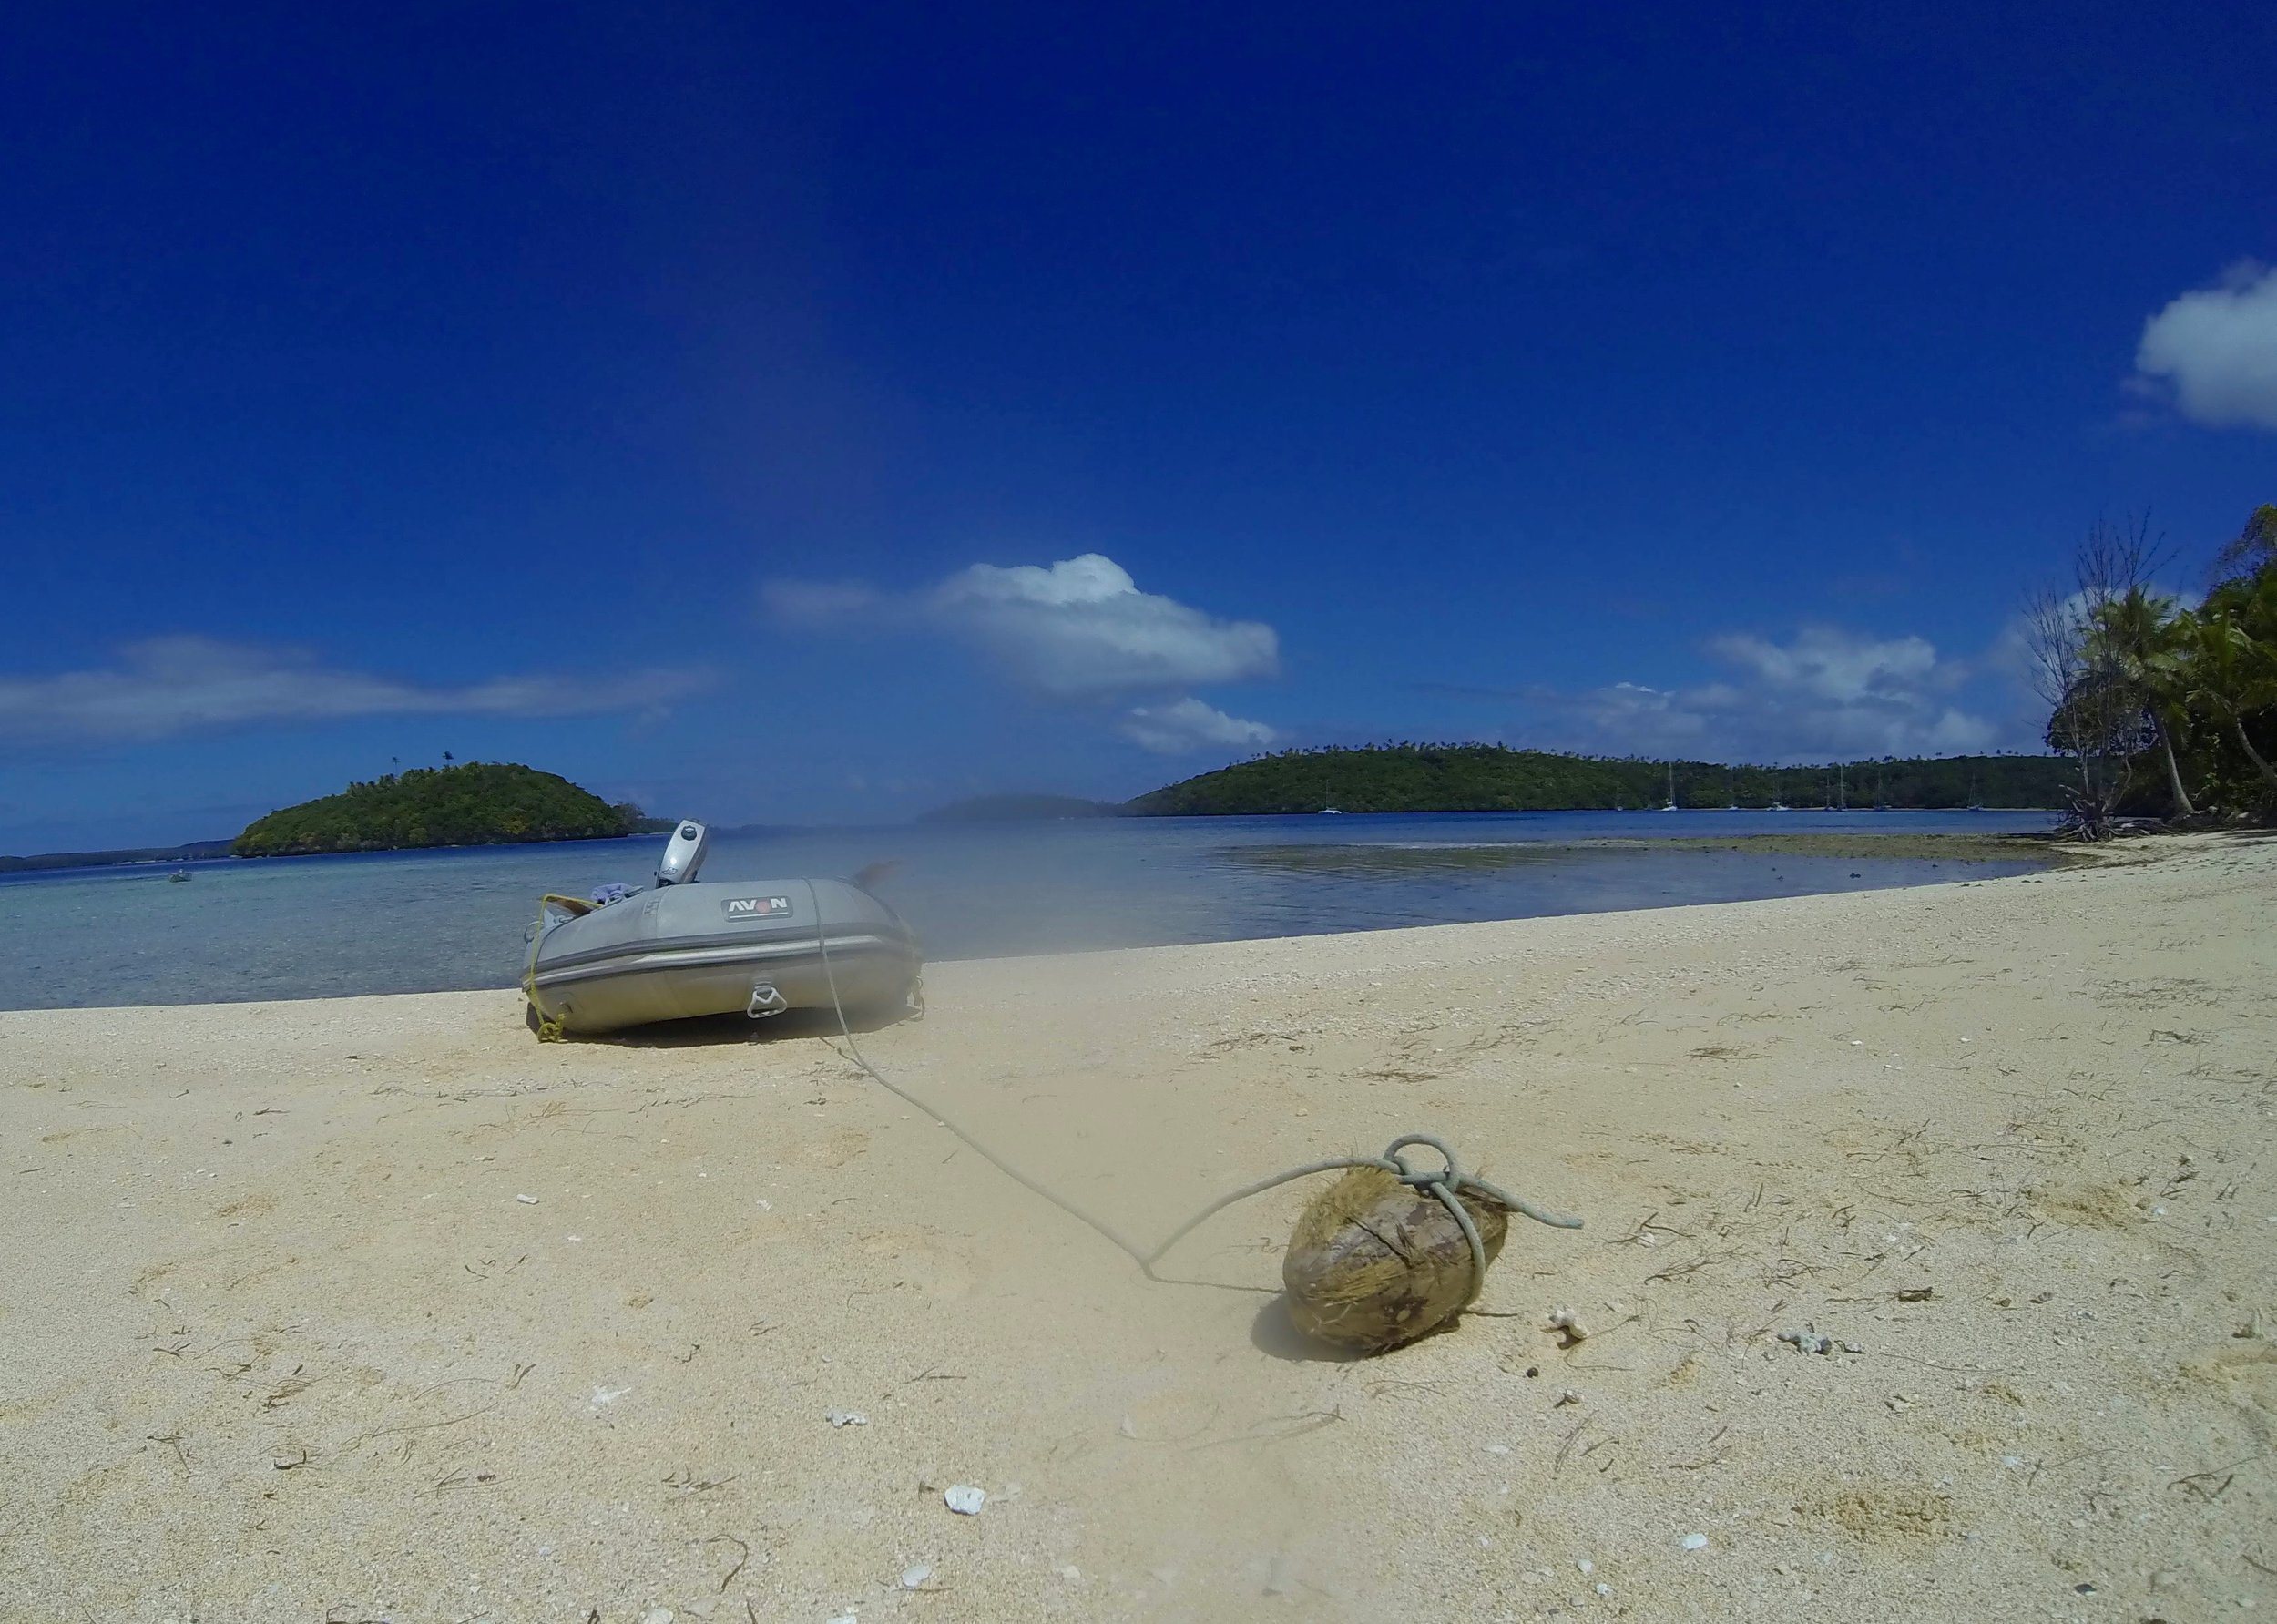 (Disclaimer: this is not my dinghy anchored to a coconut.)